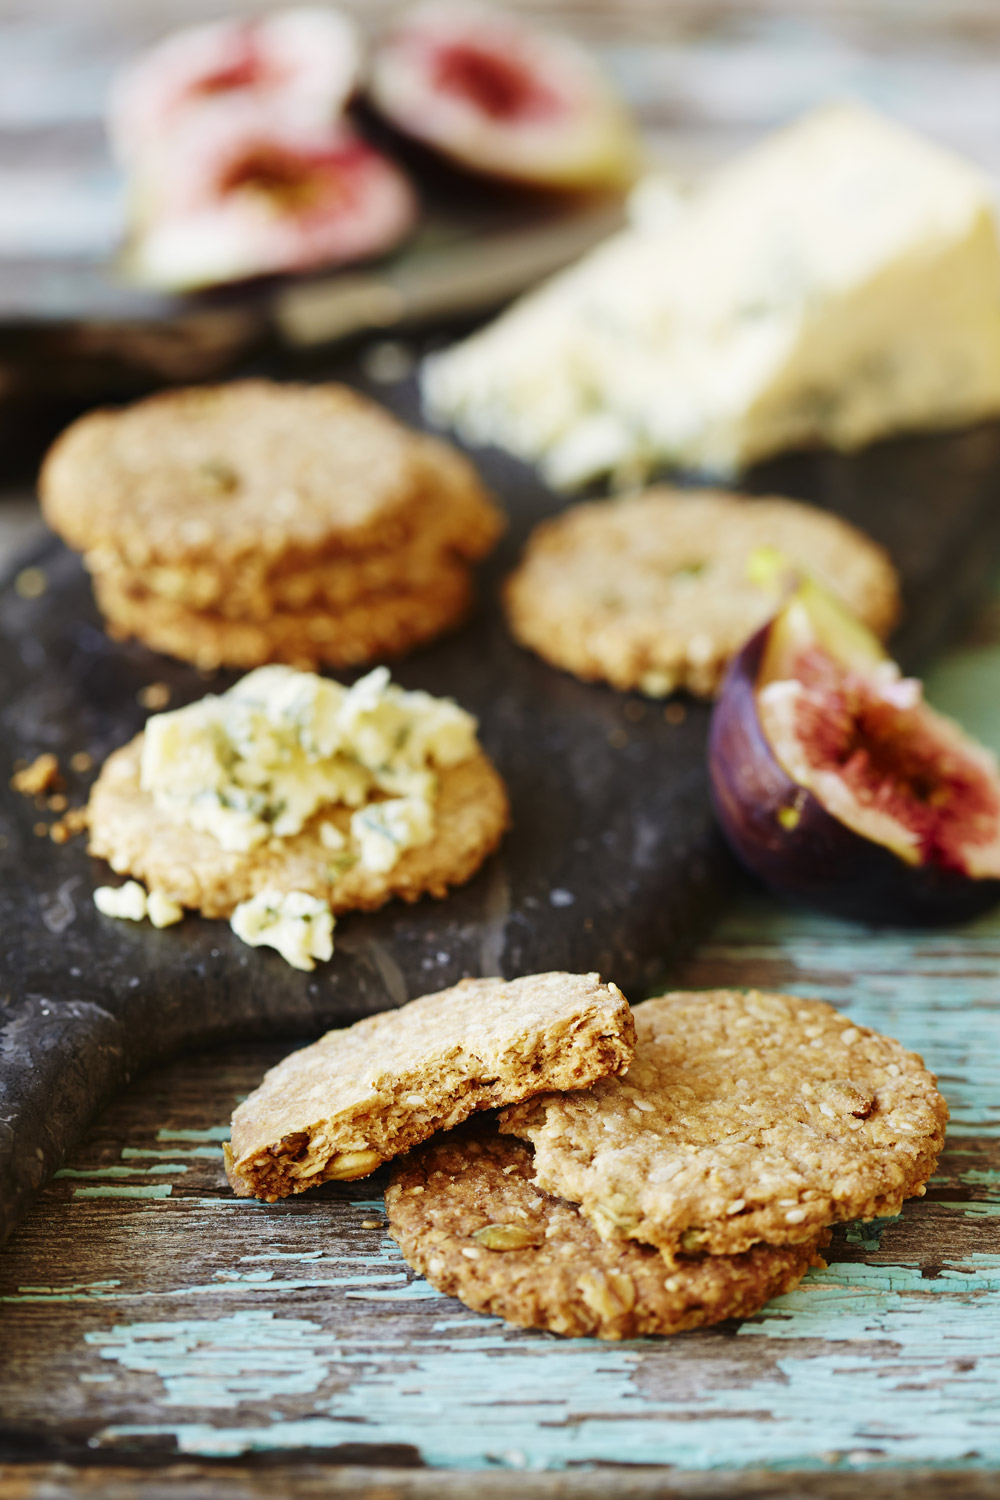 Seed and oat biscuits for cheese - auzure Canola Oil